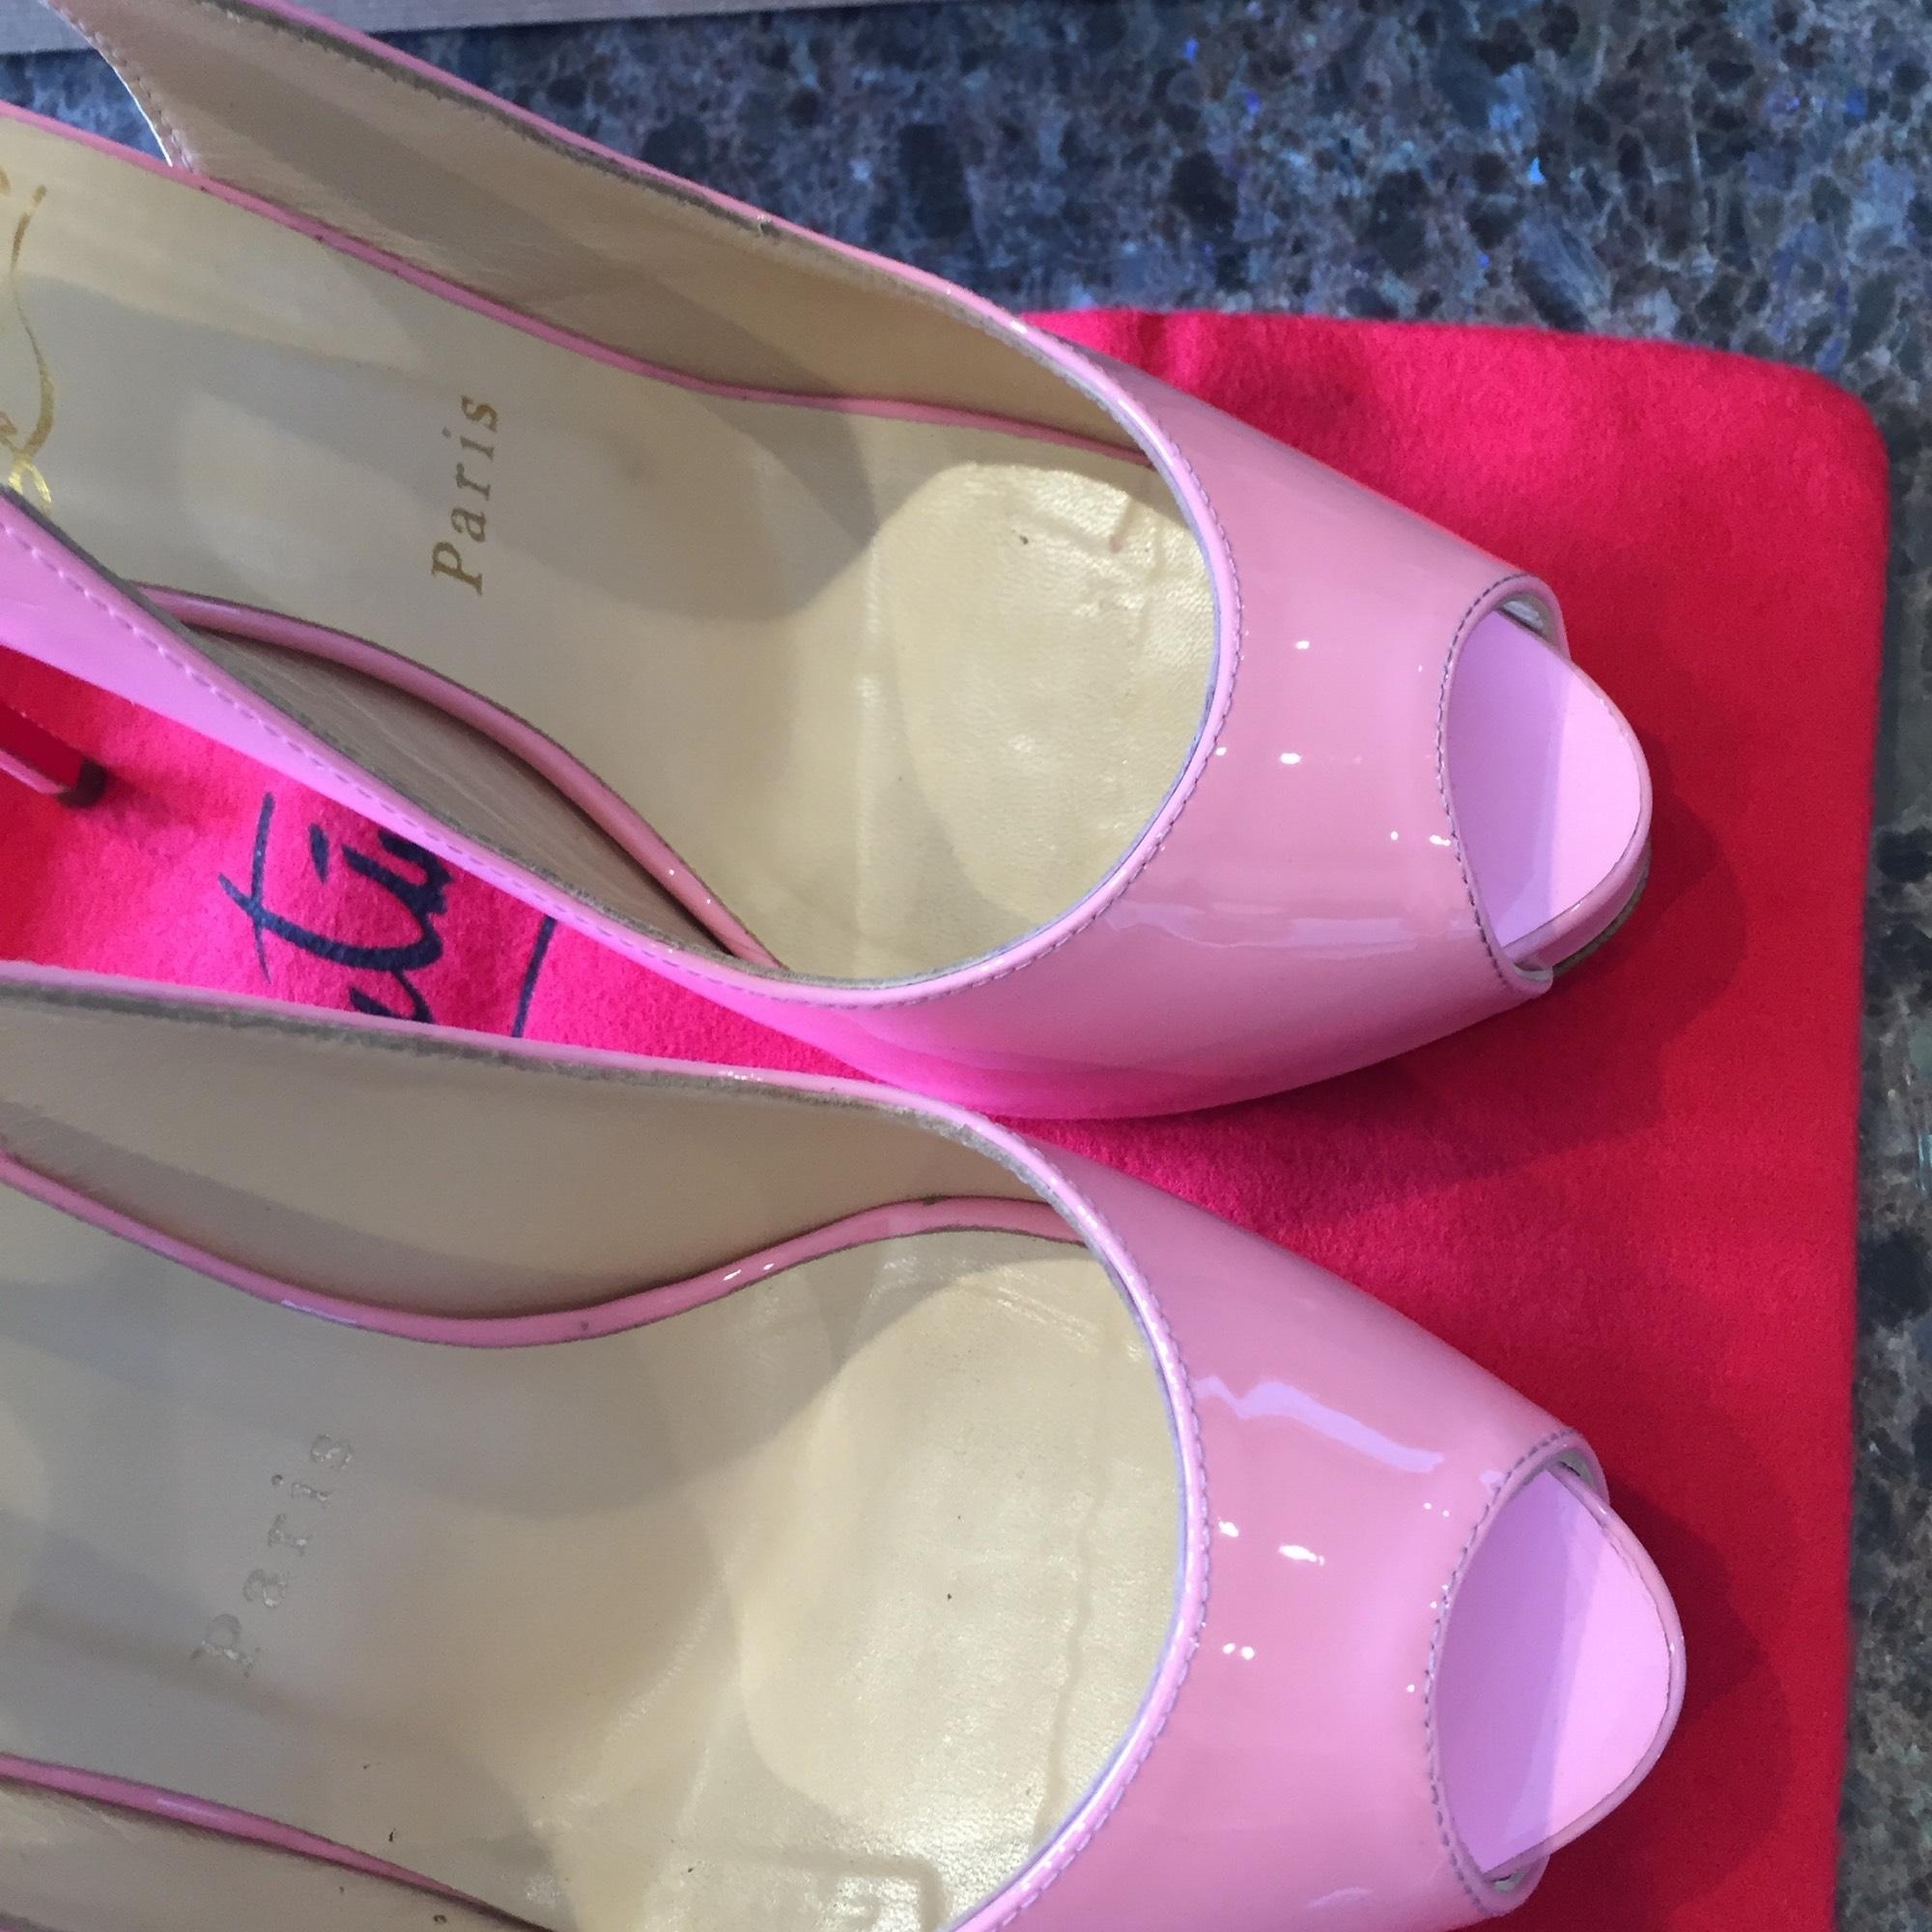 f53e9bc0835 Christian Louboutin Private Number Pink Patent Rose Platform ...